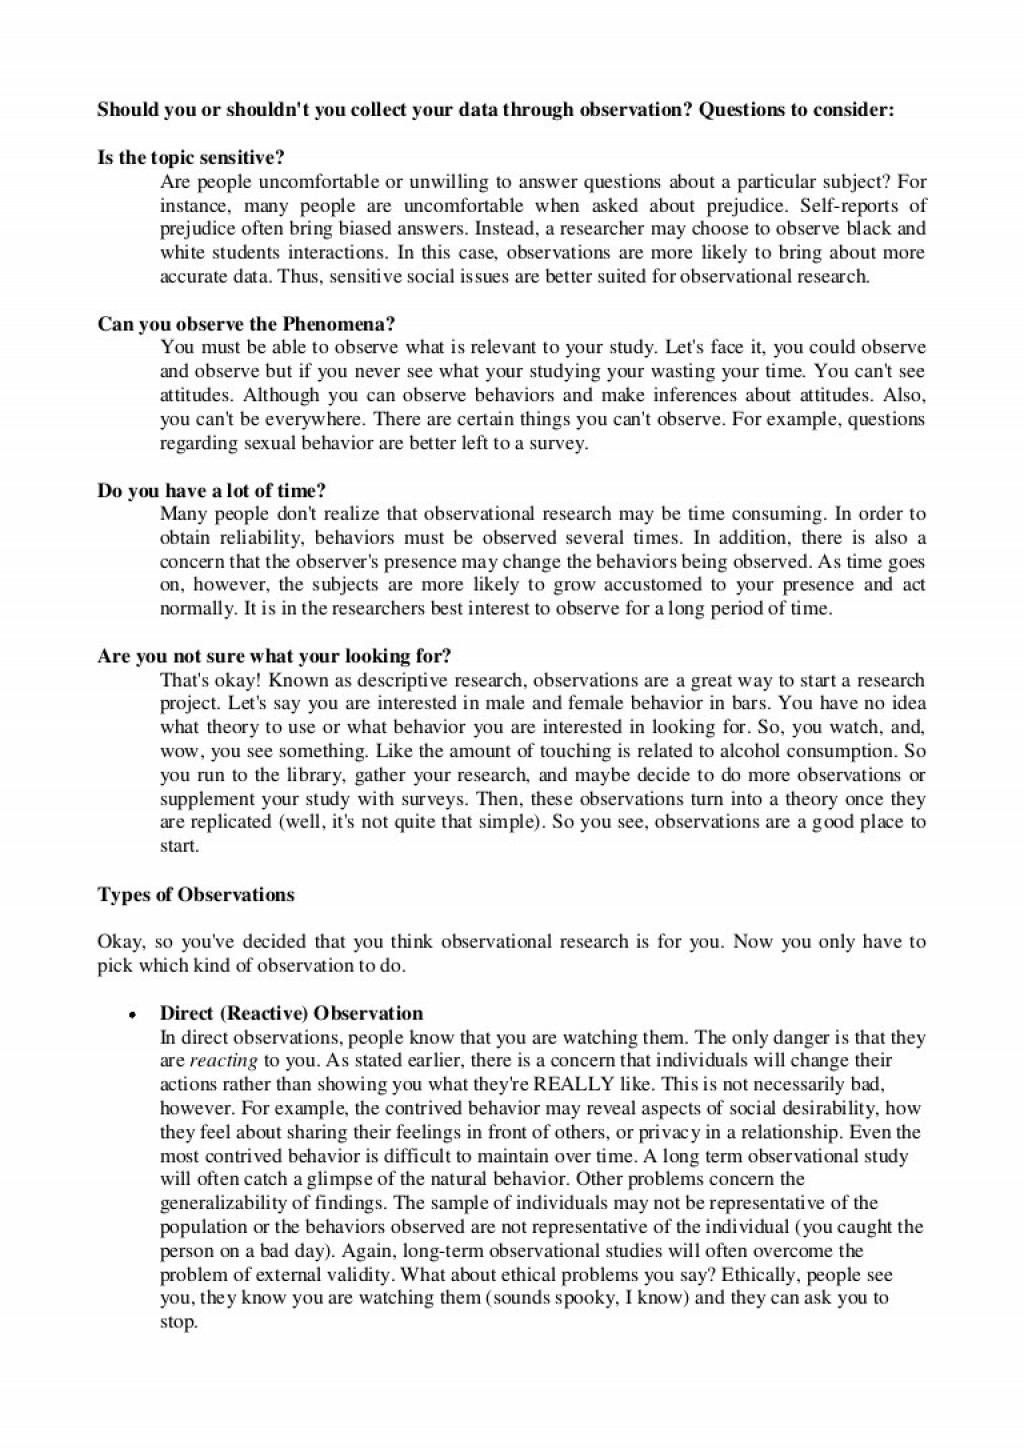 001 Essay Example Cultural Observation Observationinterview Phpapp02 Thumbnail Awful Large